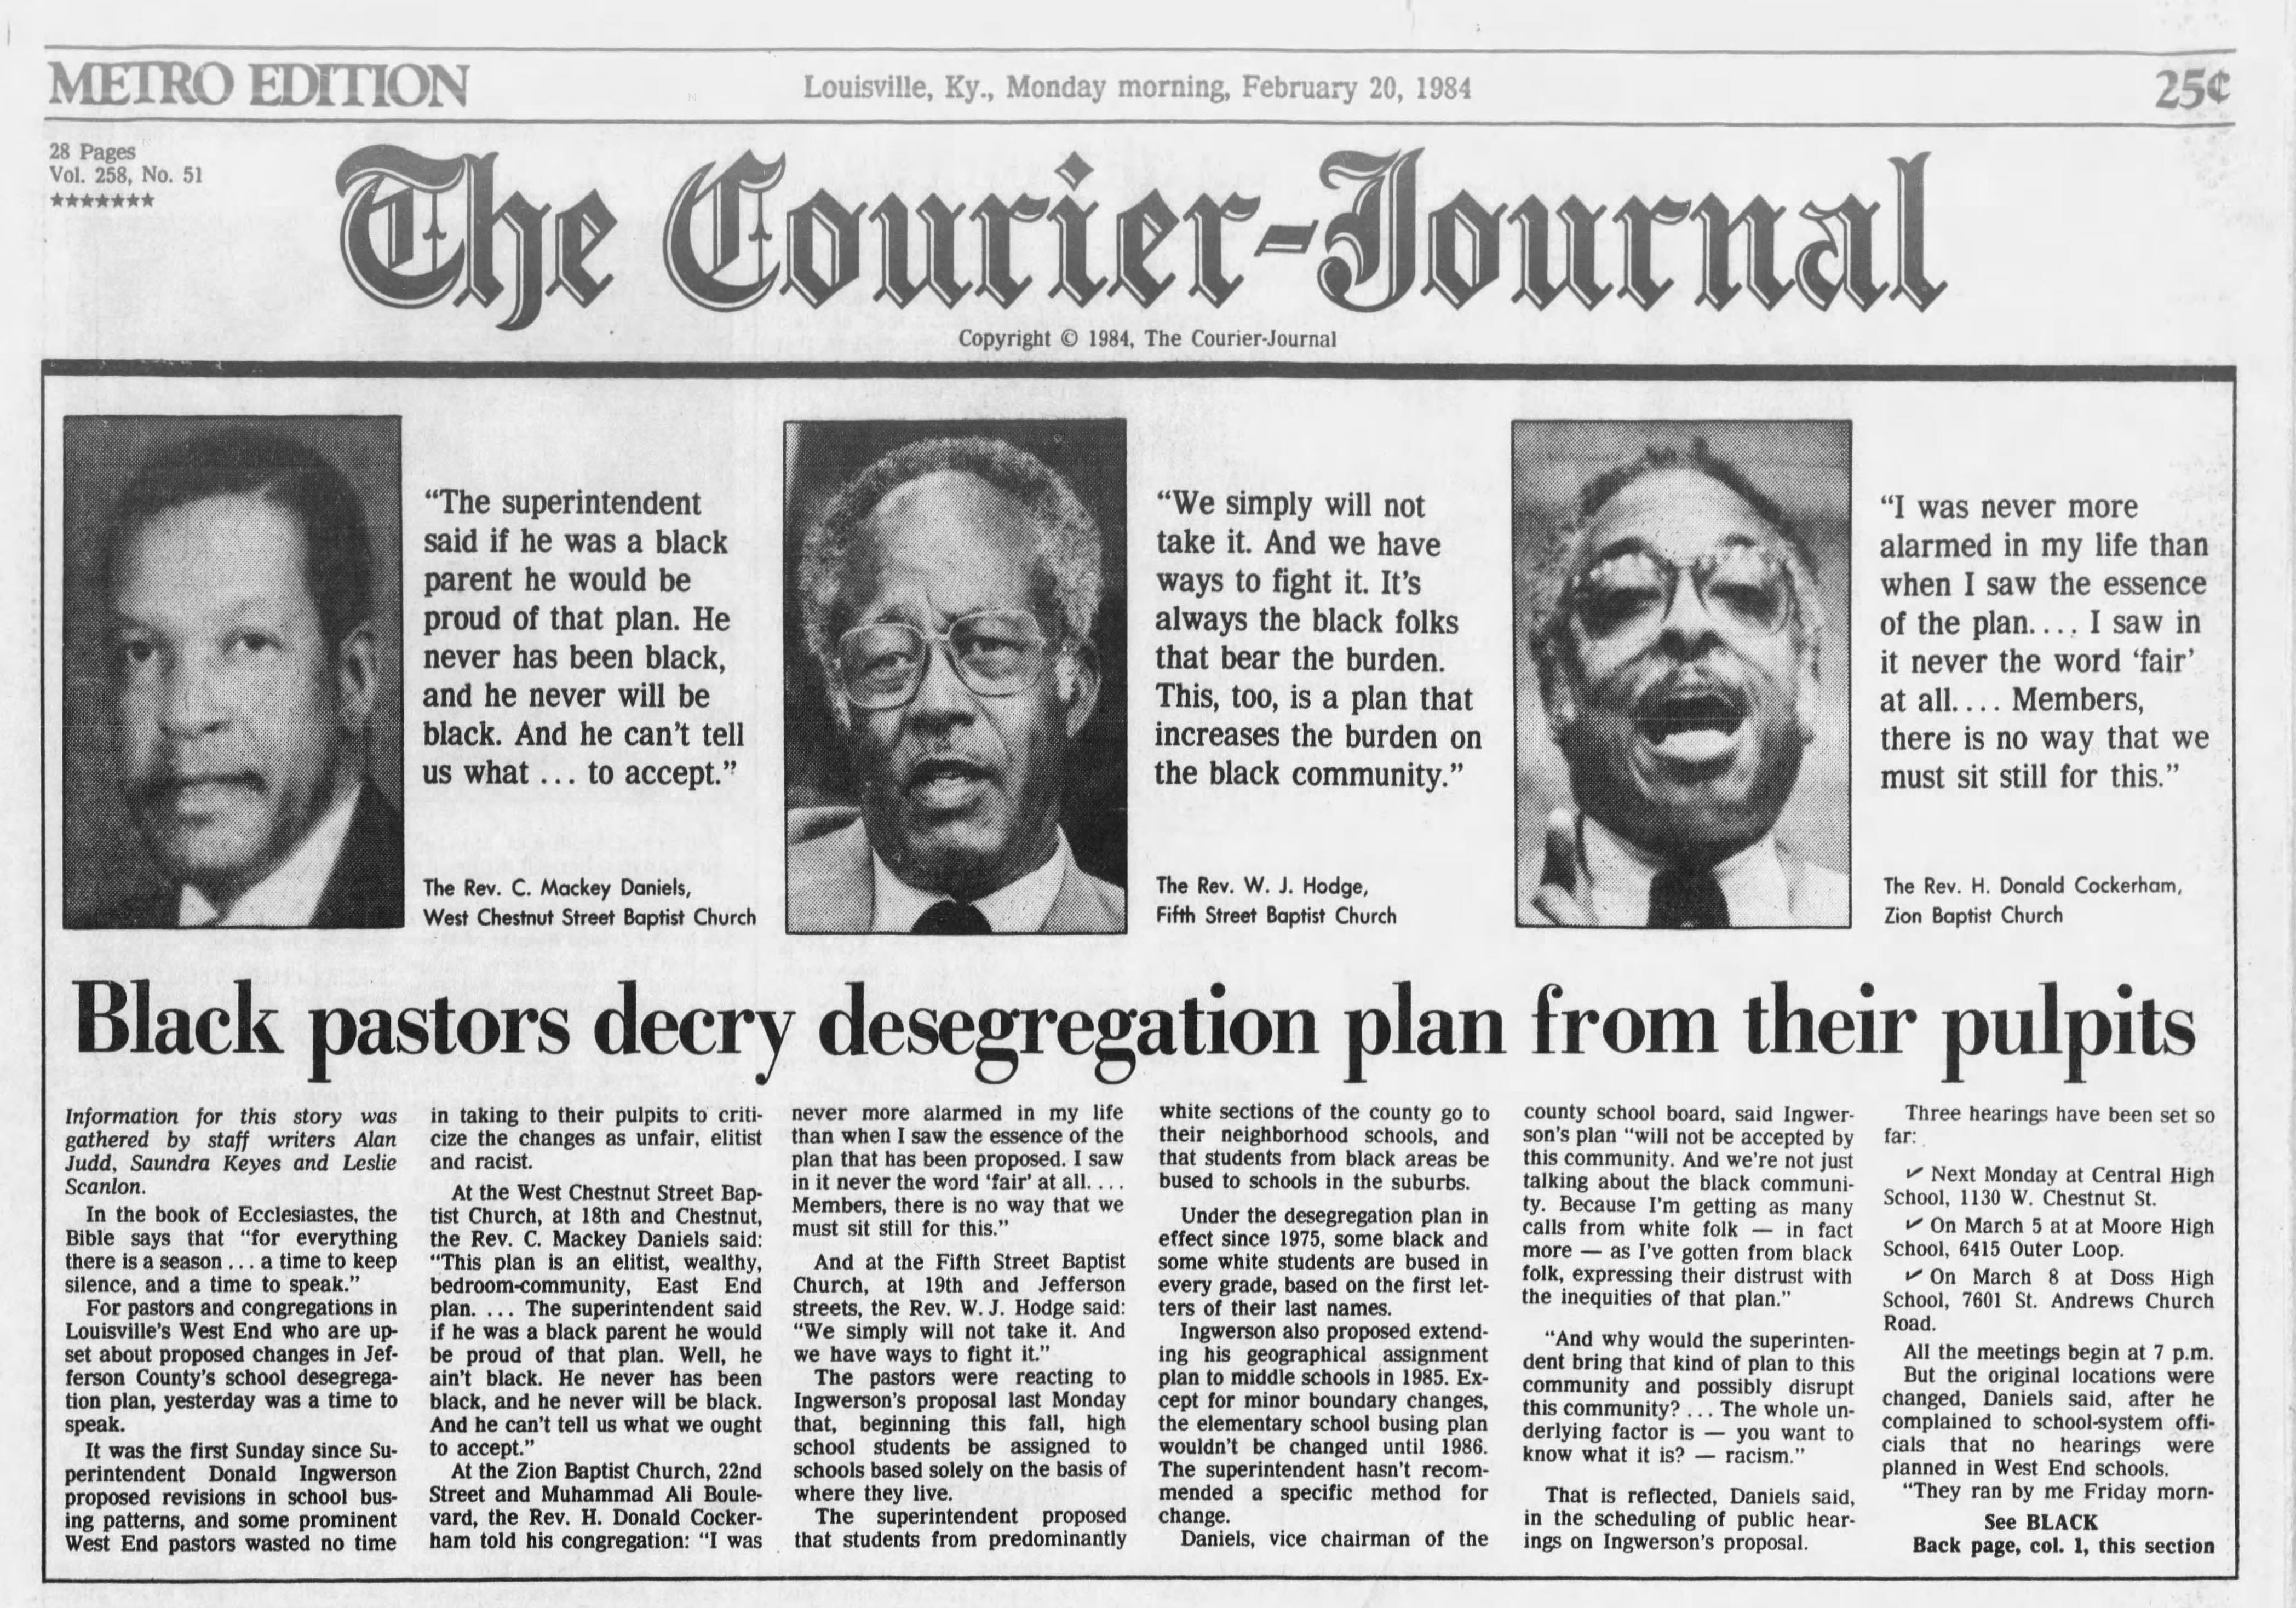 The front page of The Courier Journal on Feb. 20, 1984.